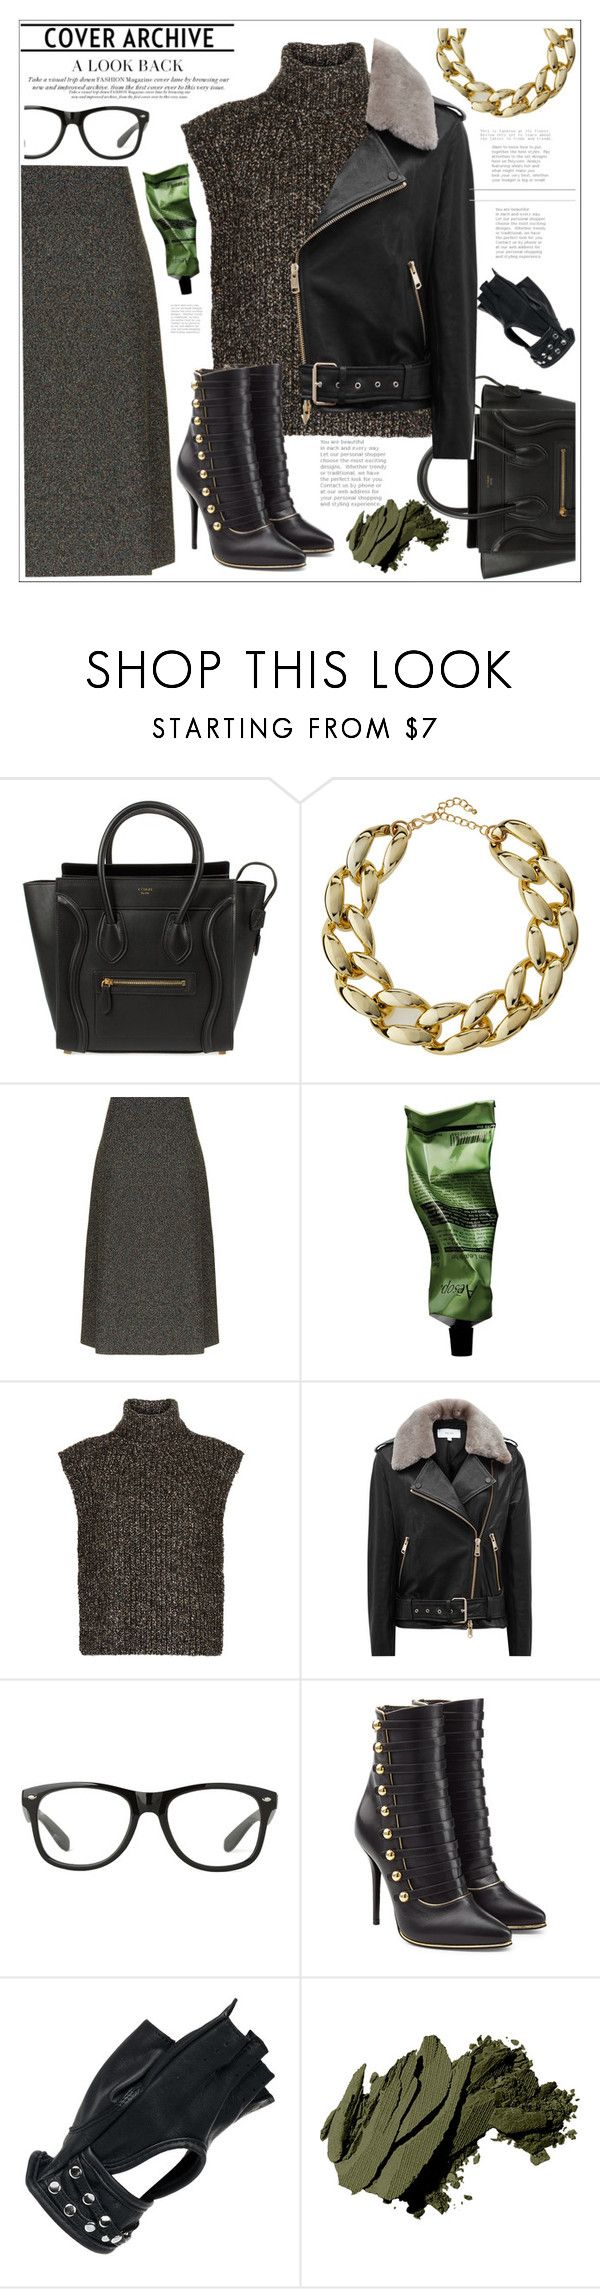 """""""#trend #jackets"""" by katymill ❤ liked on Polyvore featuring CÉLINE, Kenneth Jay Lane, Rosetta Getty, Aesop, Étoile Isabel Marant, Reiss, Balmain, Wilsons Leather and Bobbi Brown Cosmetics"""